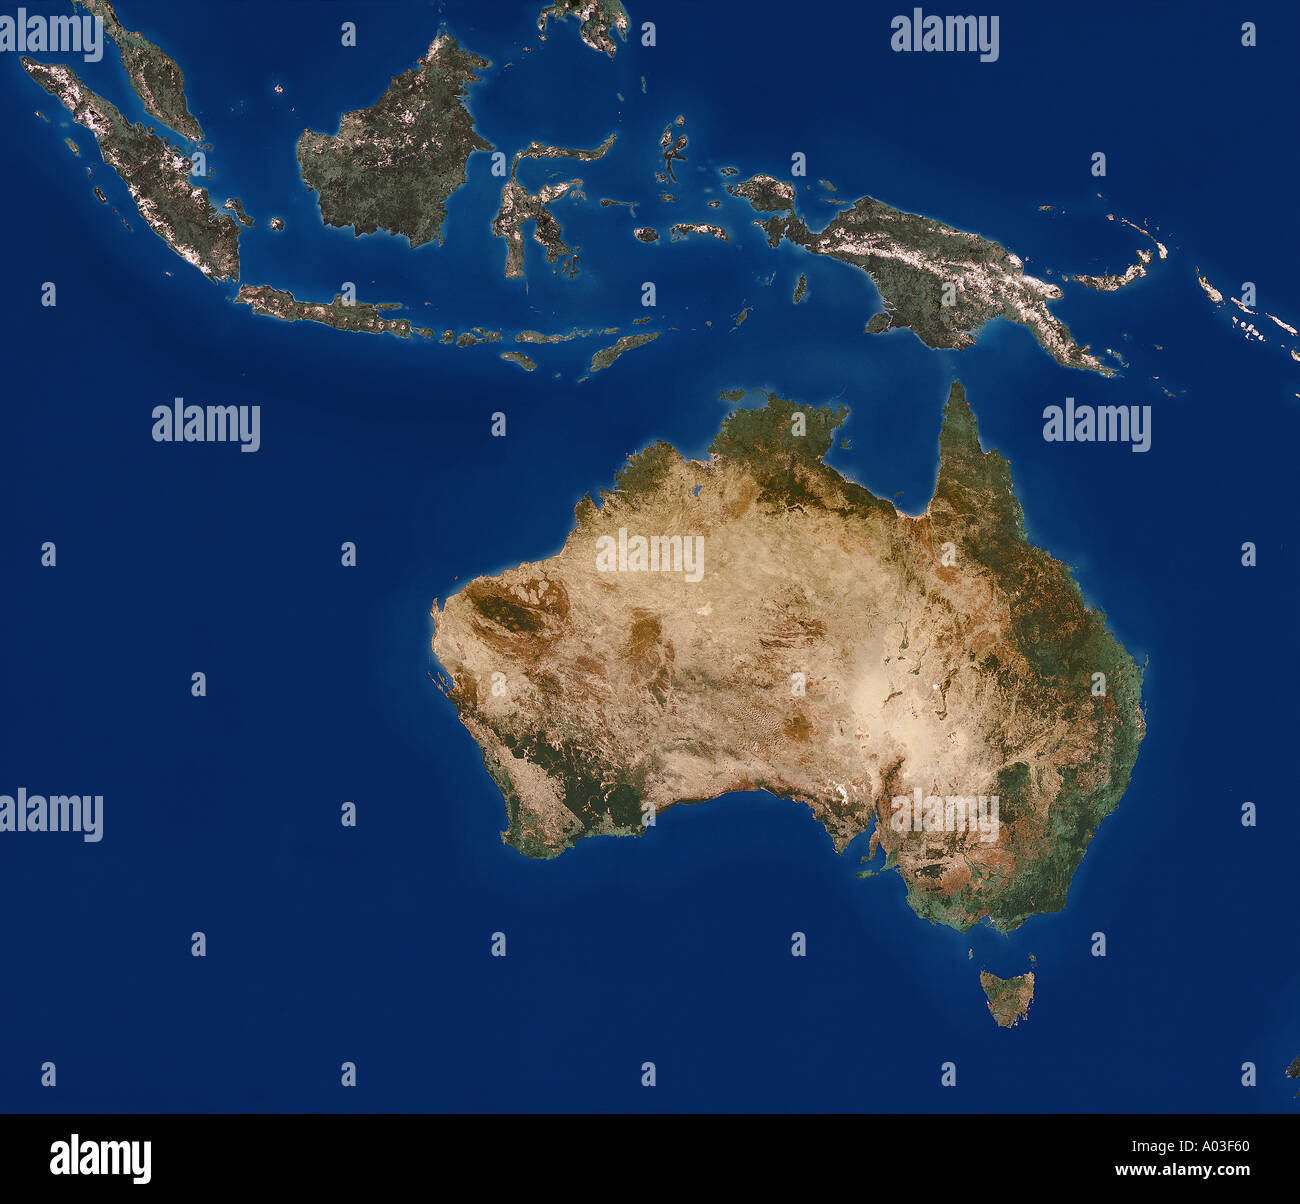 australia from space - Stock Image